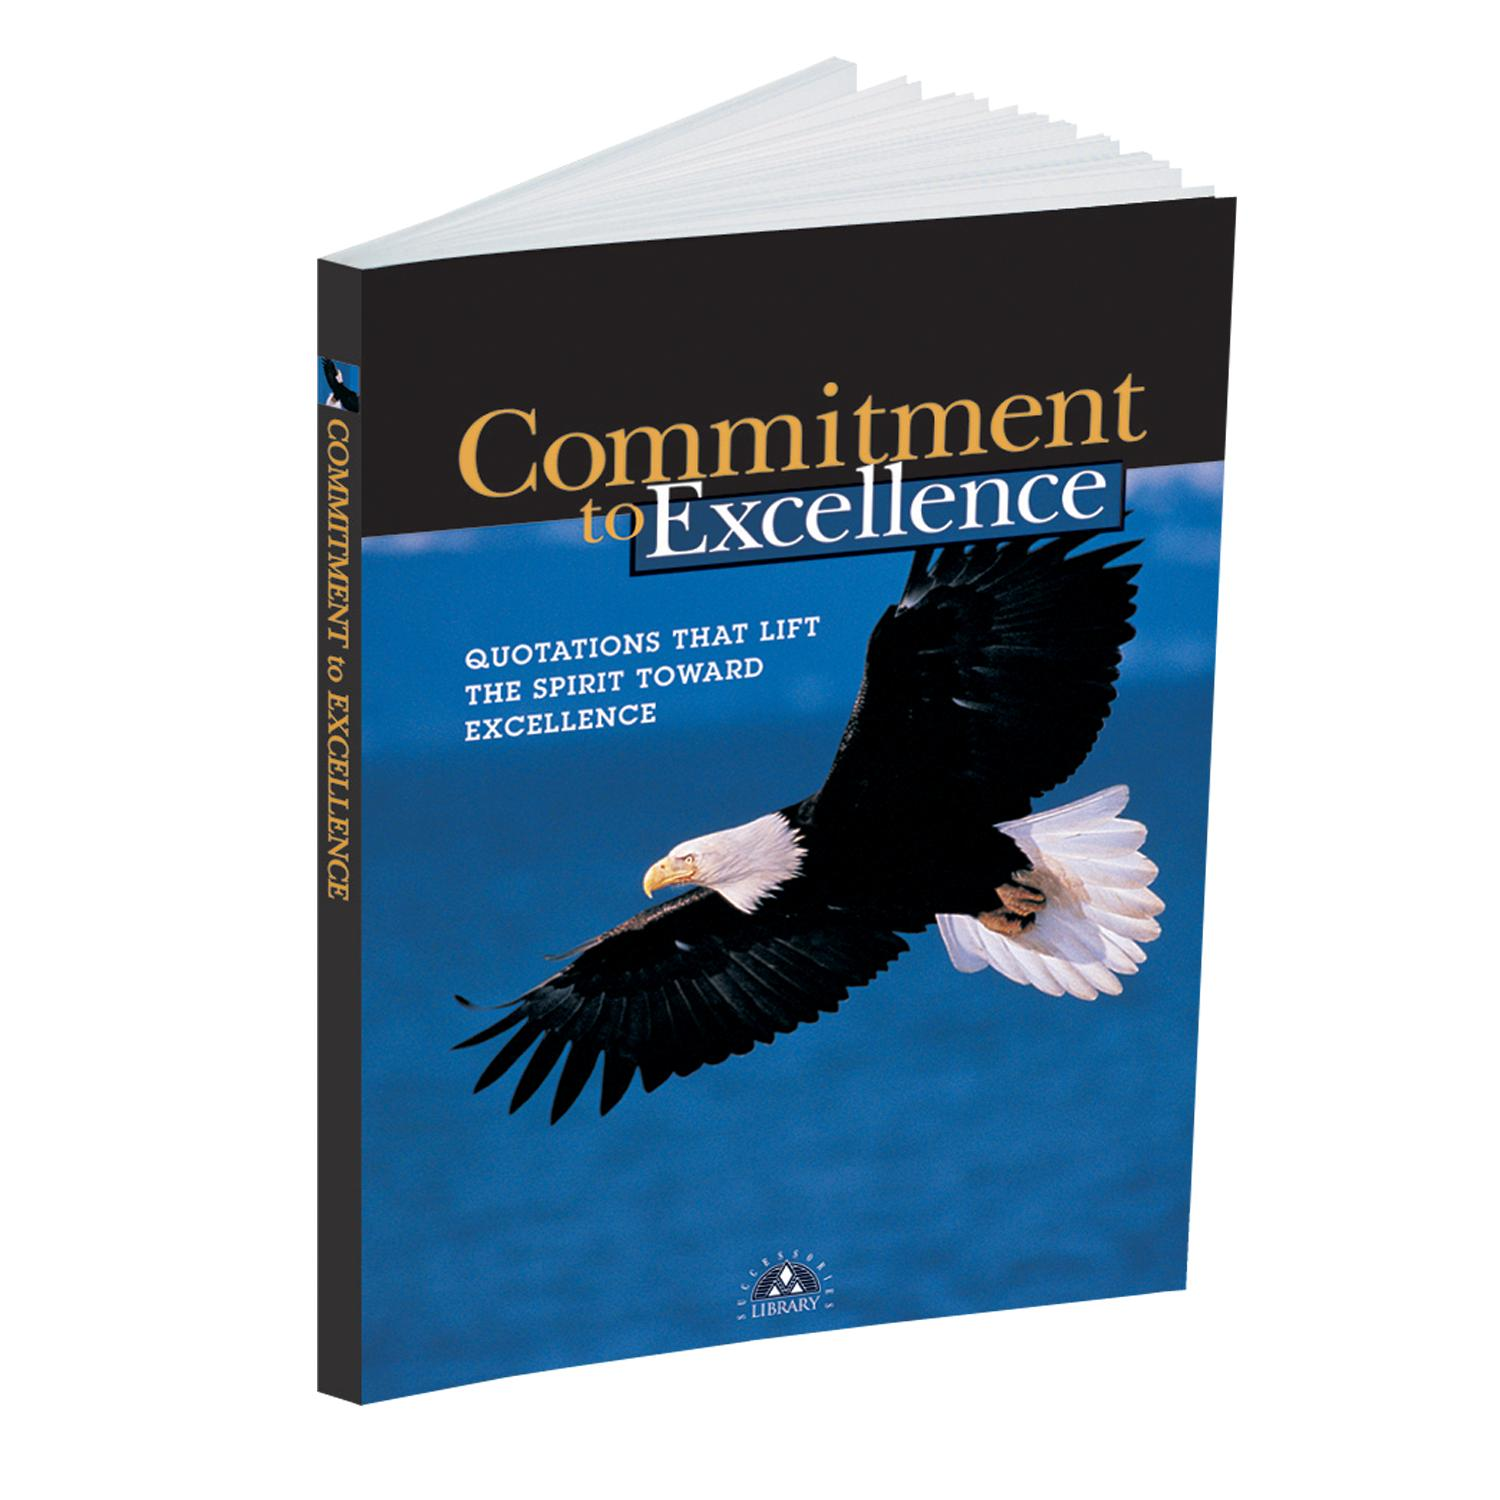 Commitment Quotes For Work Quotesgram: Commitment To Excellence Quotes. QuotesGram